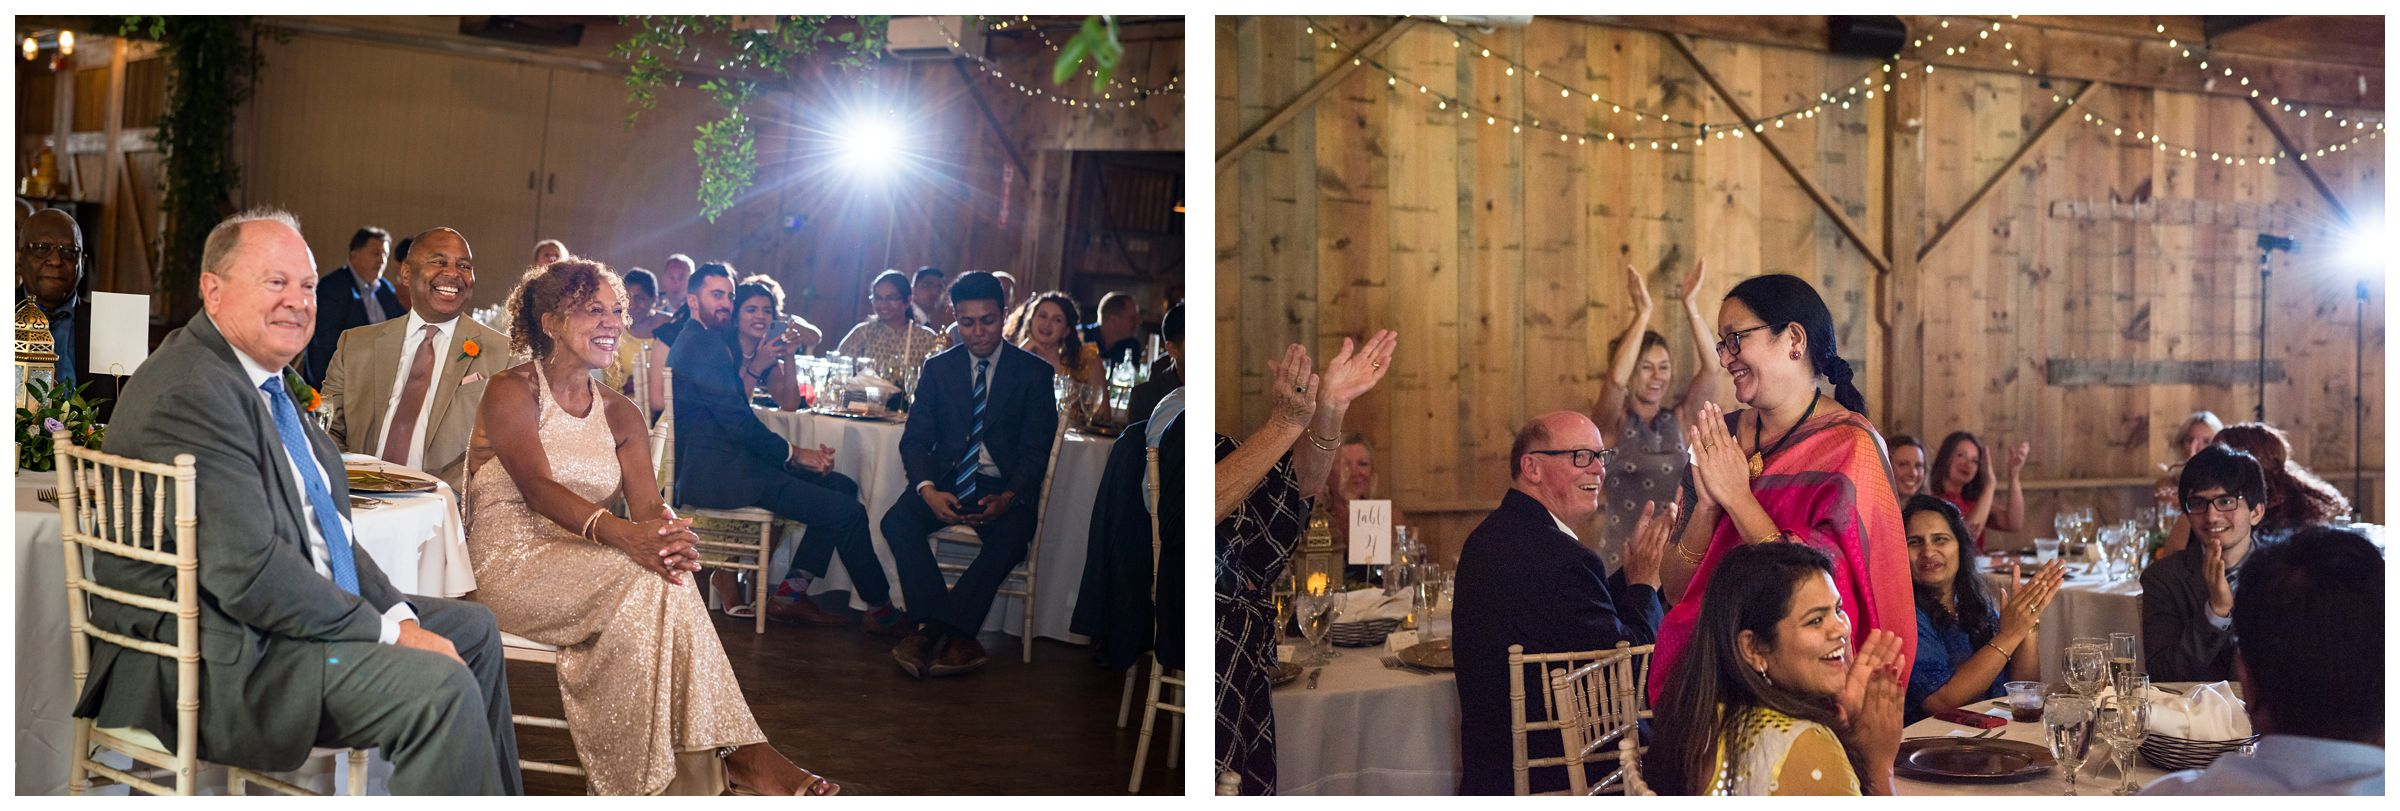 African American and Indian wedding reception at Jorgensen Farms historic barn in Columbus